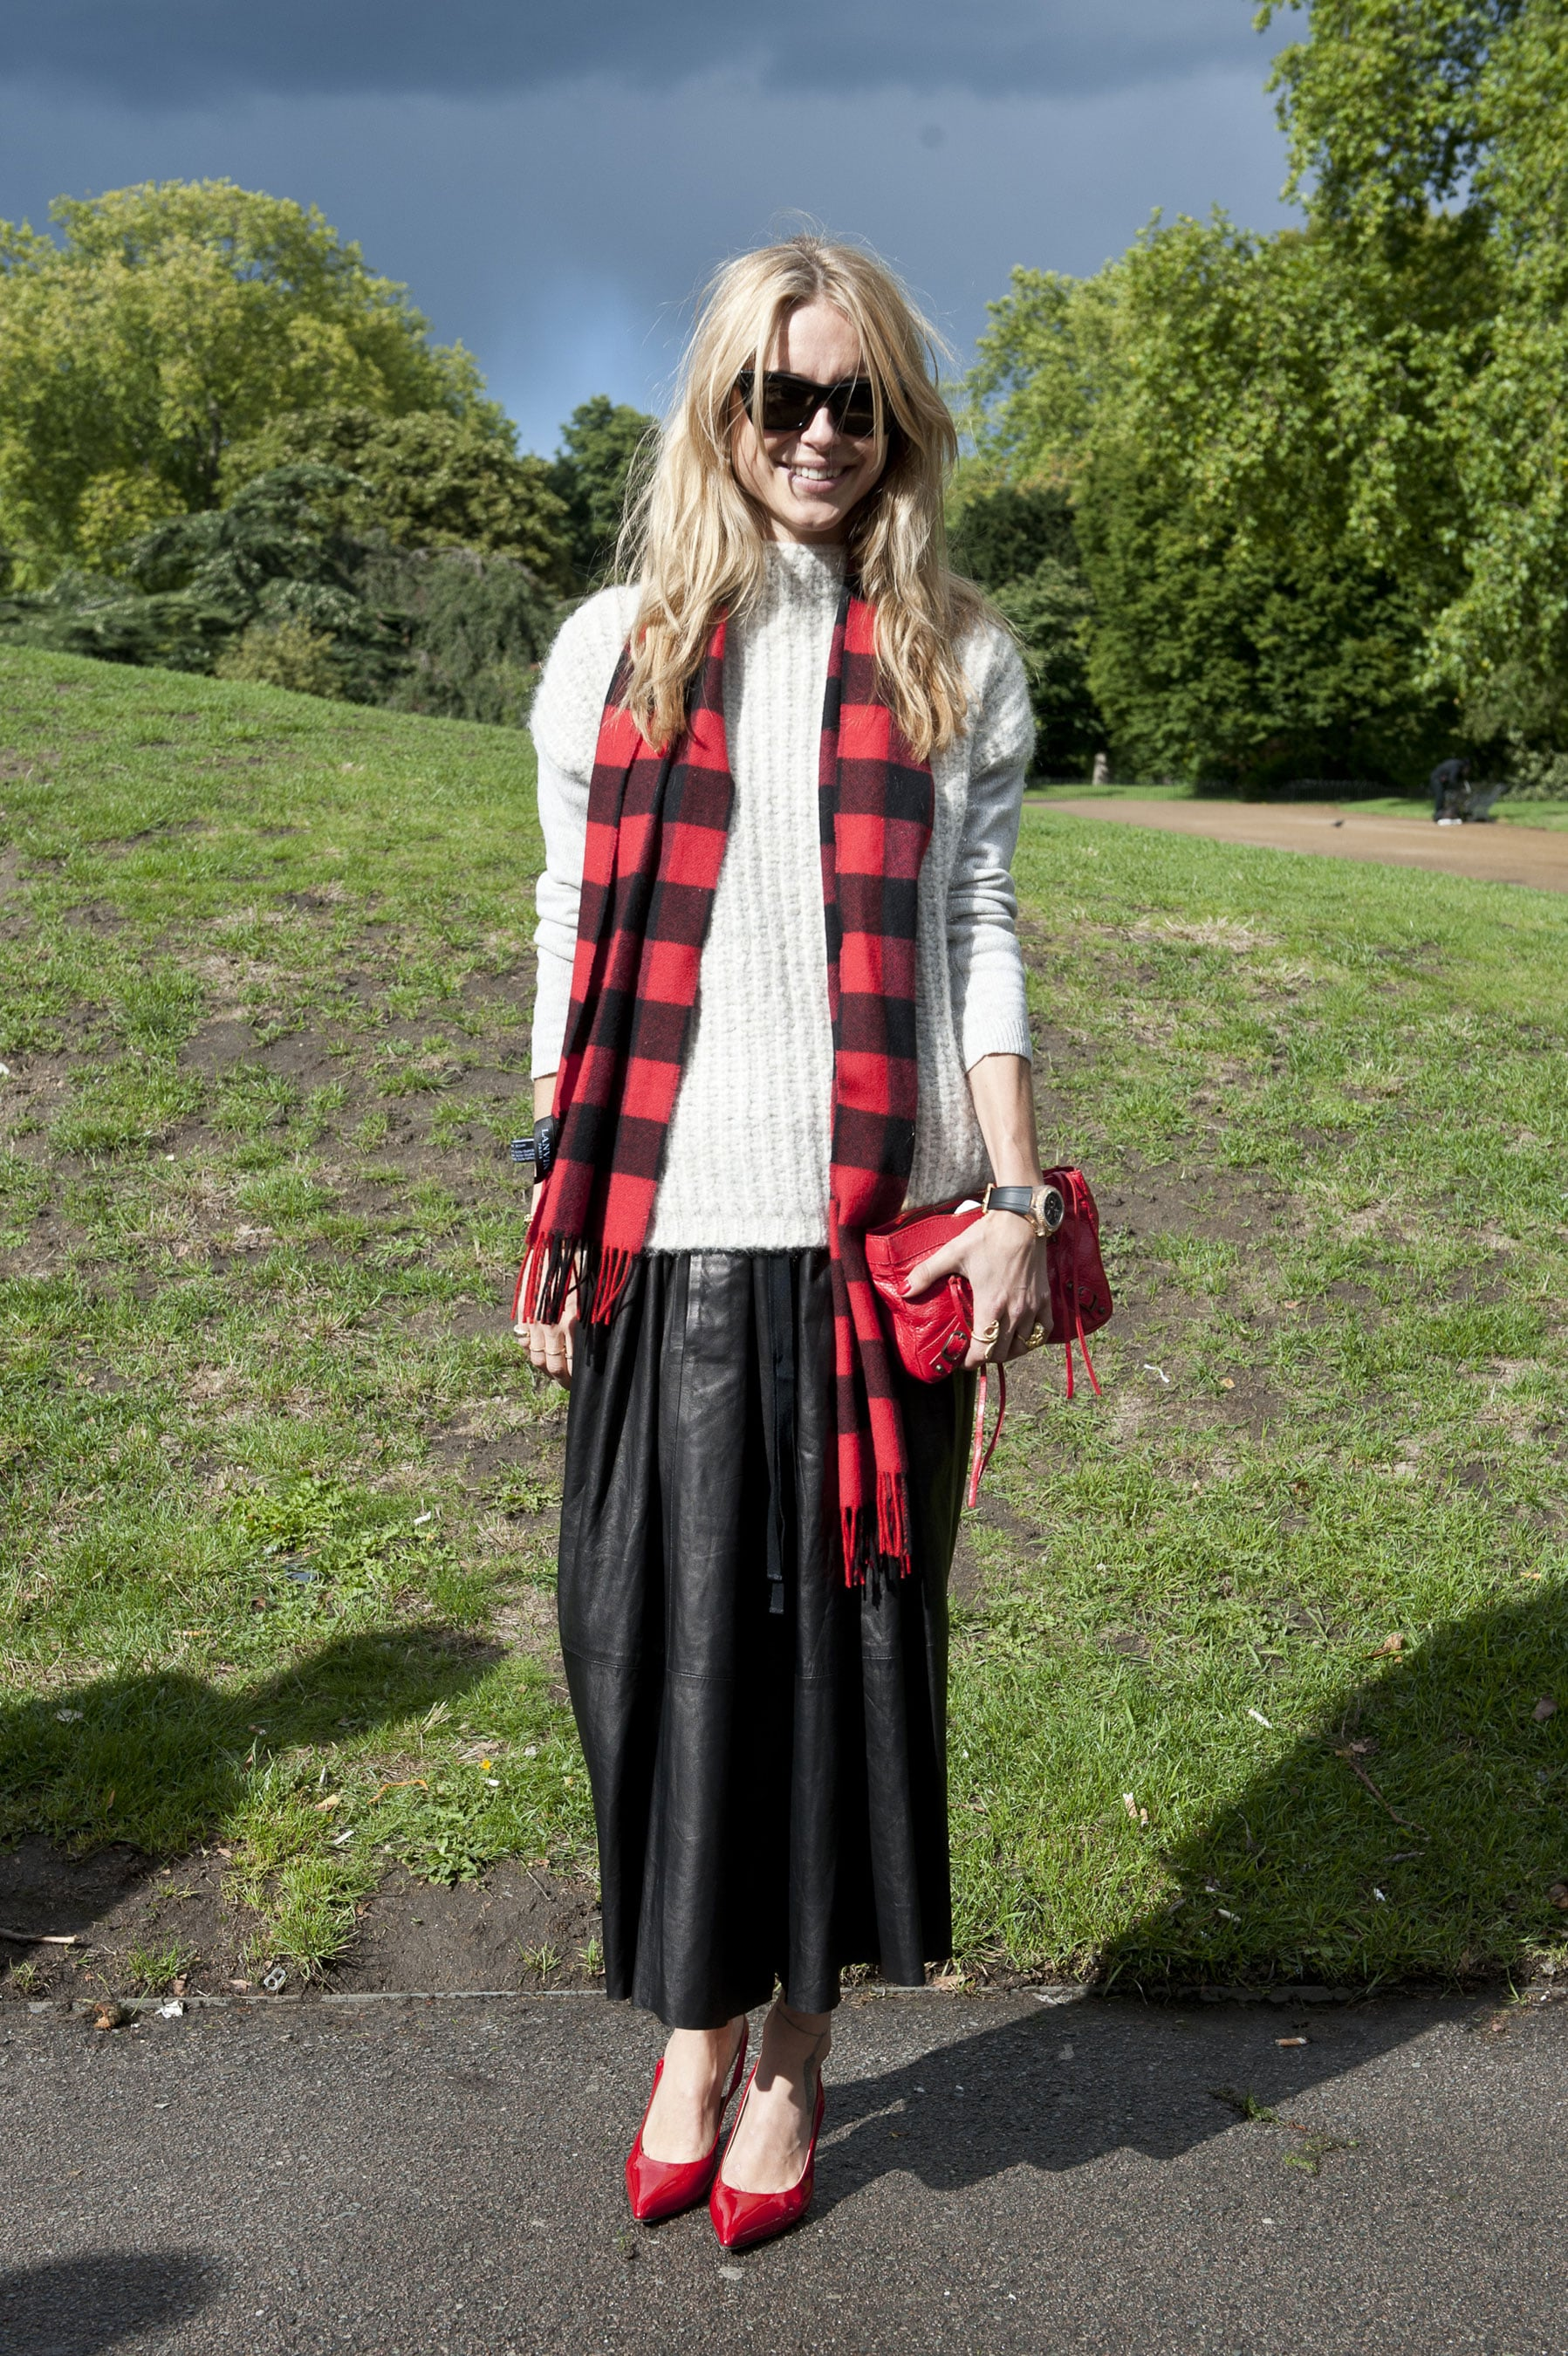 Channeling Fall with a checked scarf and a fuzzy knit.